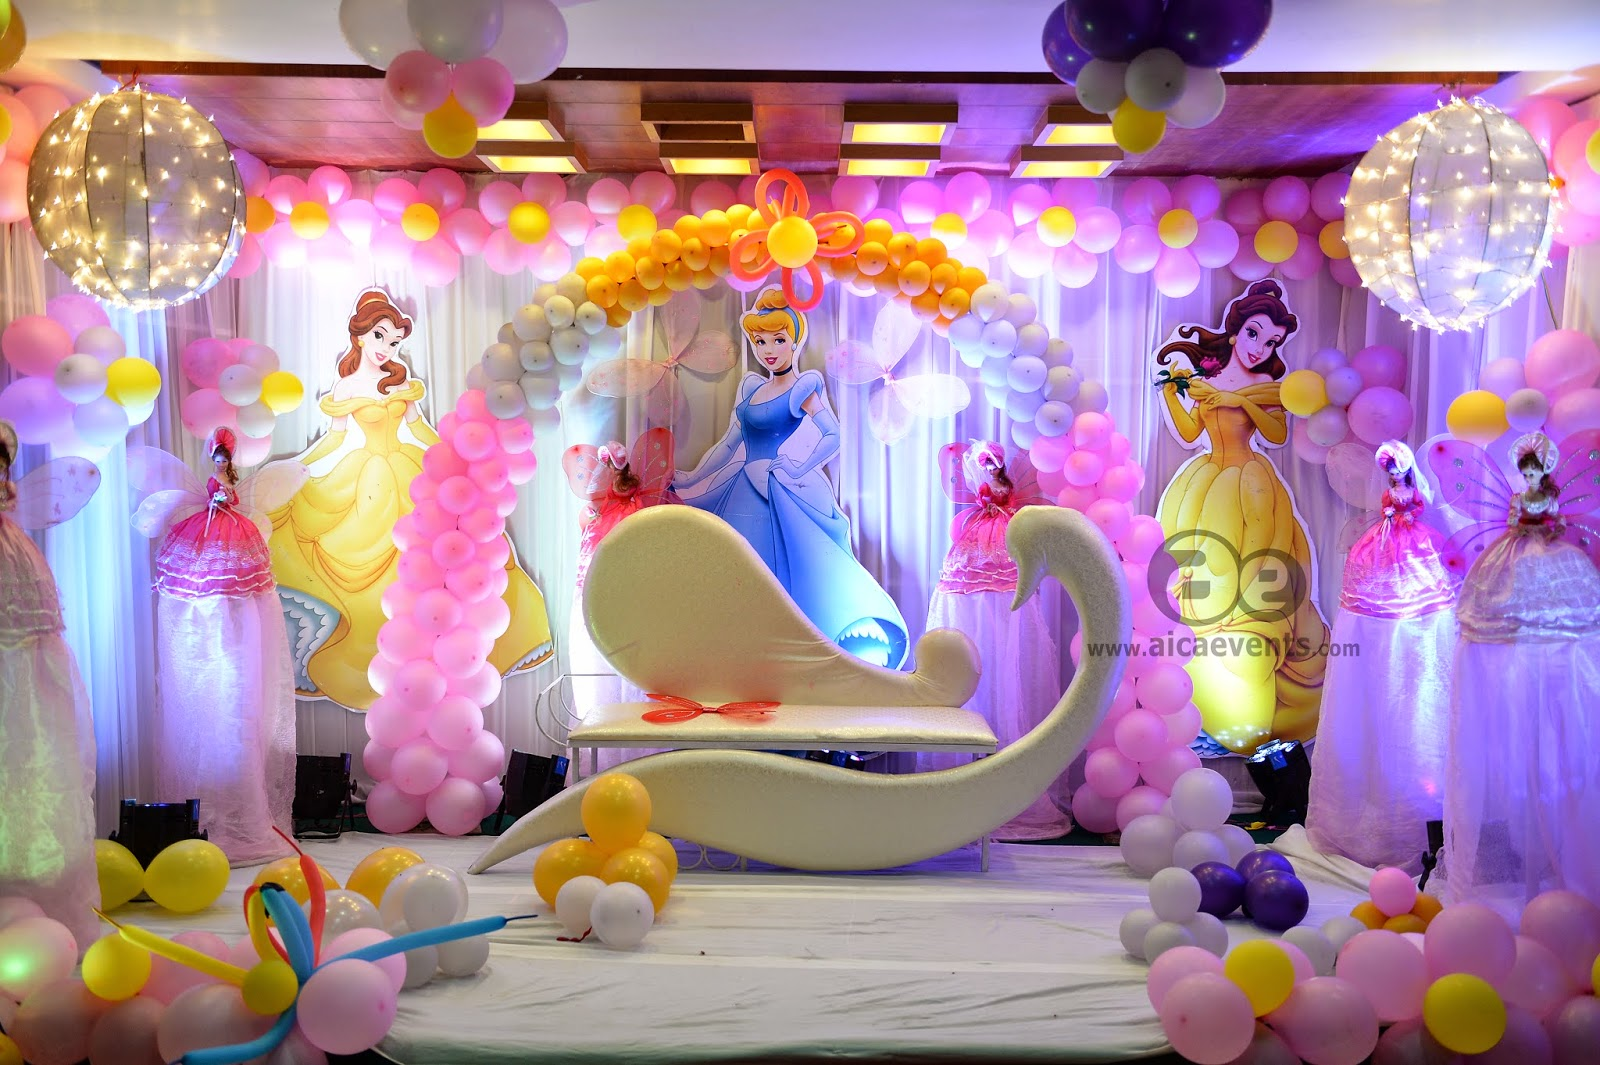 Birthday Stage Decoration Balloons Image Inspiration of Cake and